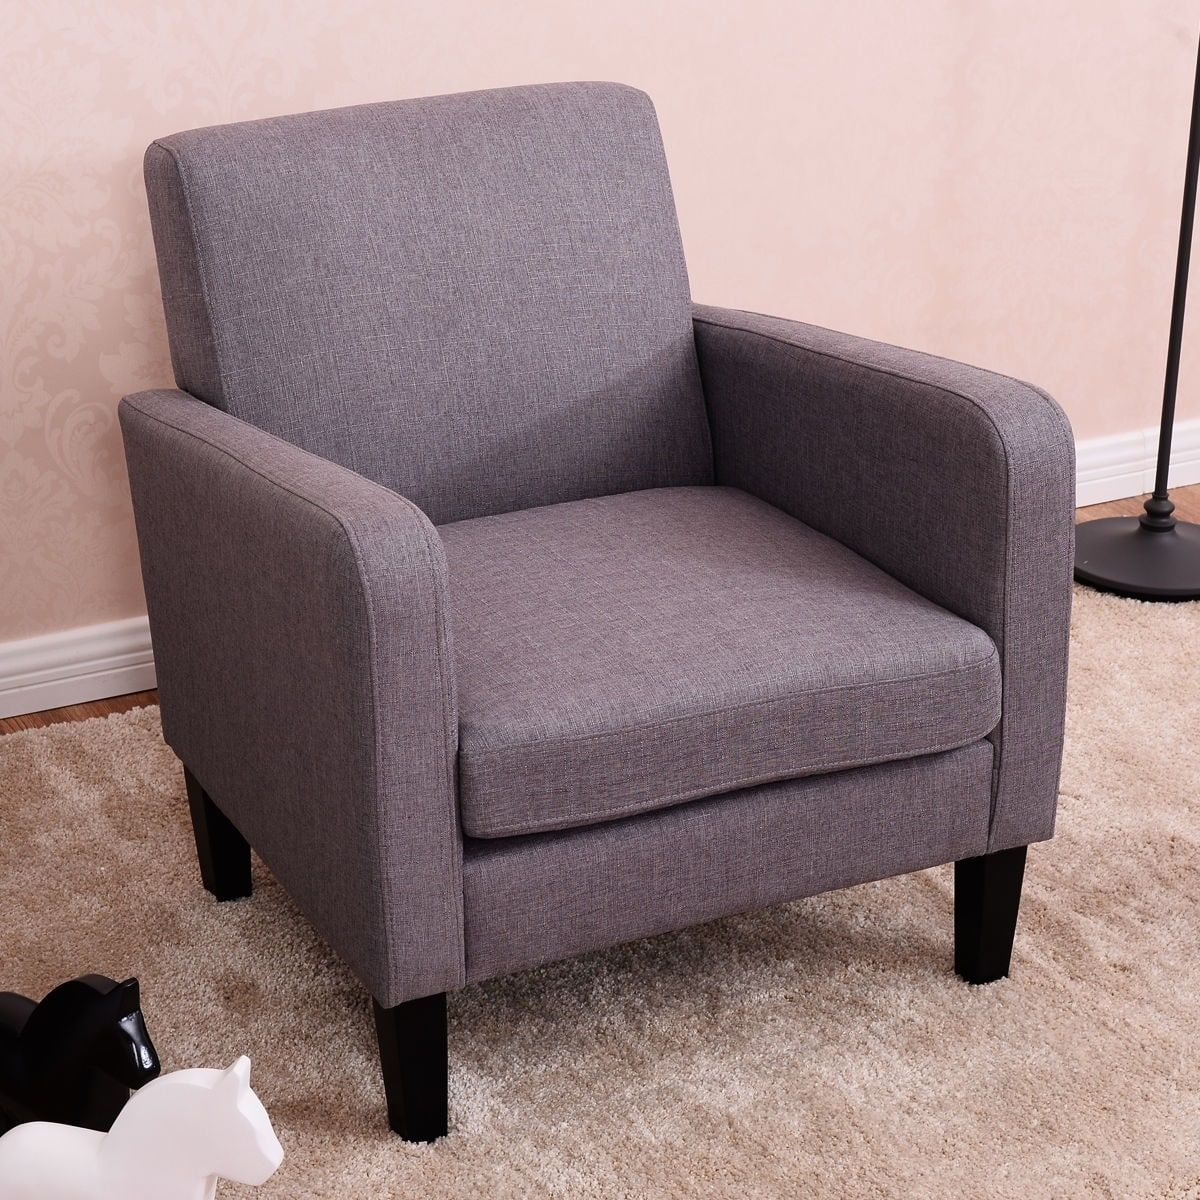 Costway leisure arm chair accent single sofa fabric upholstered living room furniture grey pine